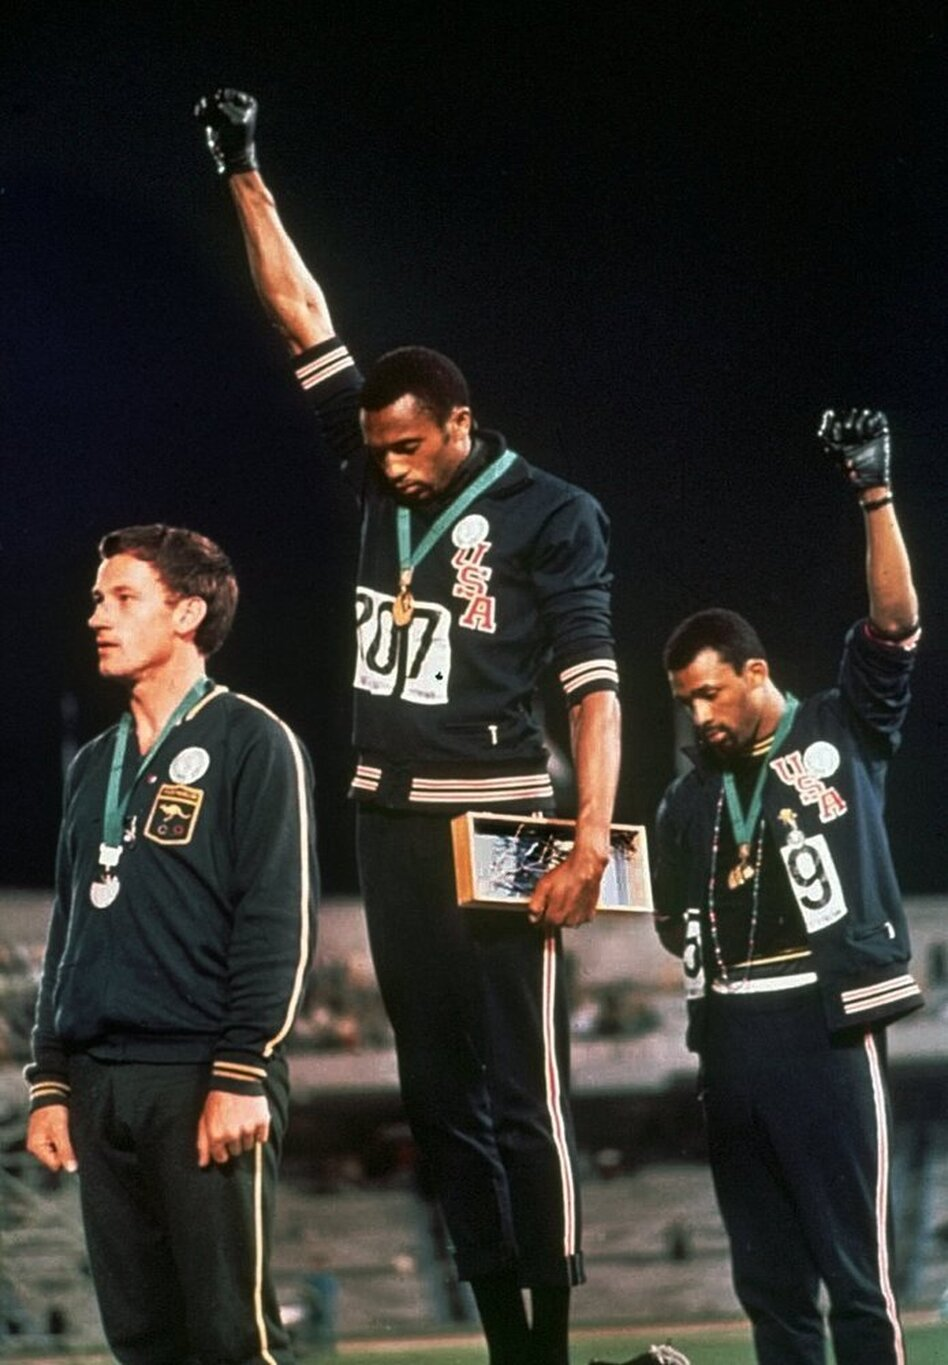 """In this Oct. 16, 1968 photo, extending gloved hands skyward, U.S. athletes Tommie Smith (center) and John Carlos (right) stare downward during the playing of the """"Star-Spangled Banner"""" at the Summer Olympic Games in Mexico City."""